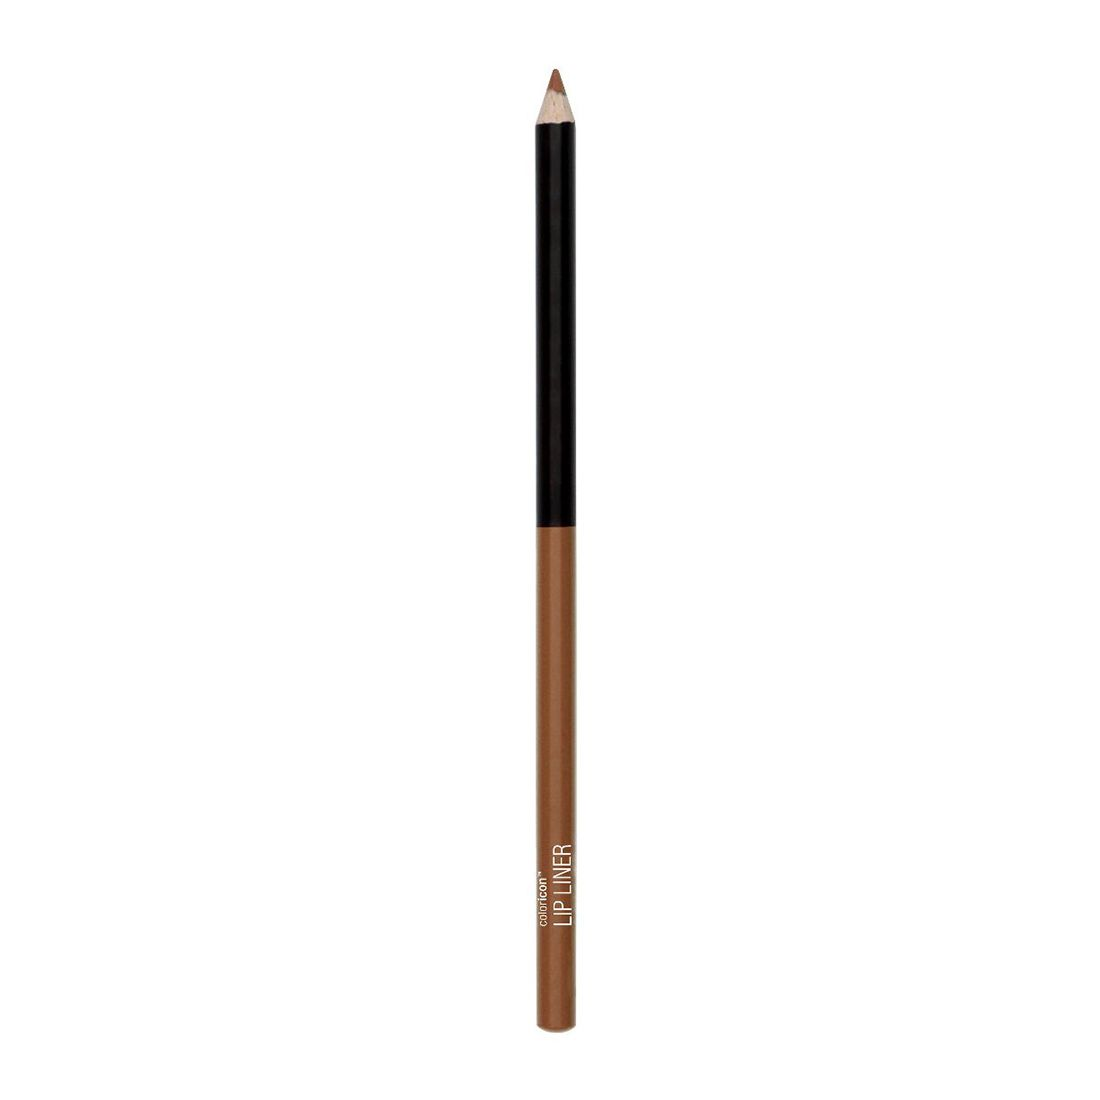 Wet N Wild Lipliner Willow